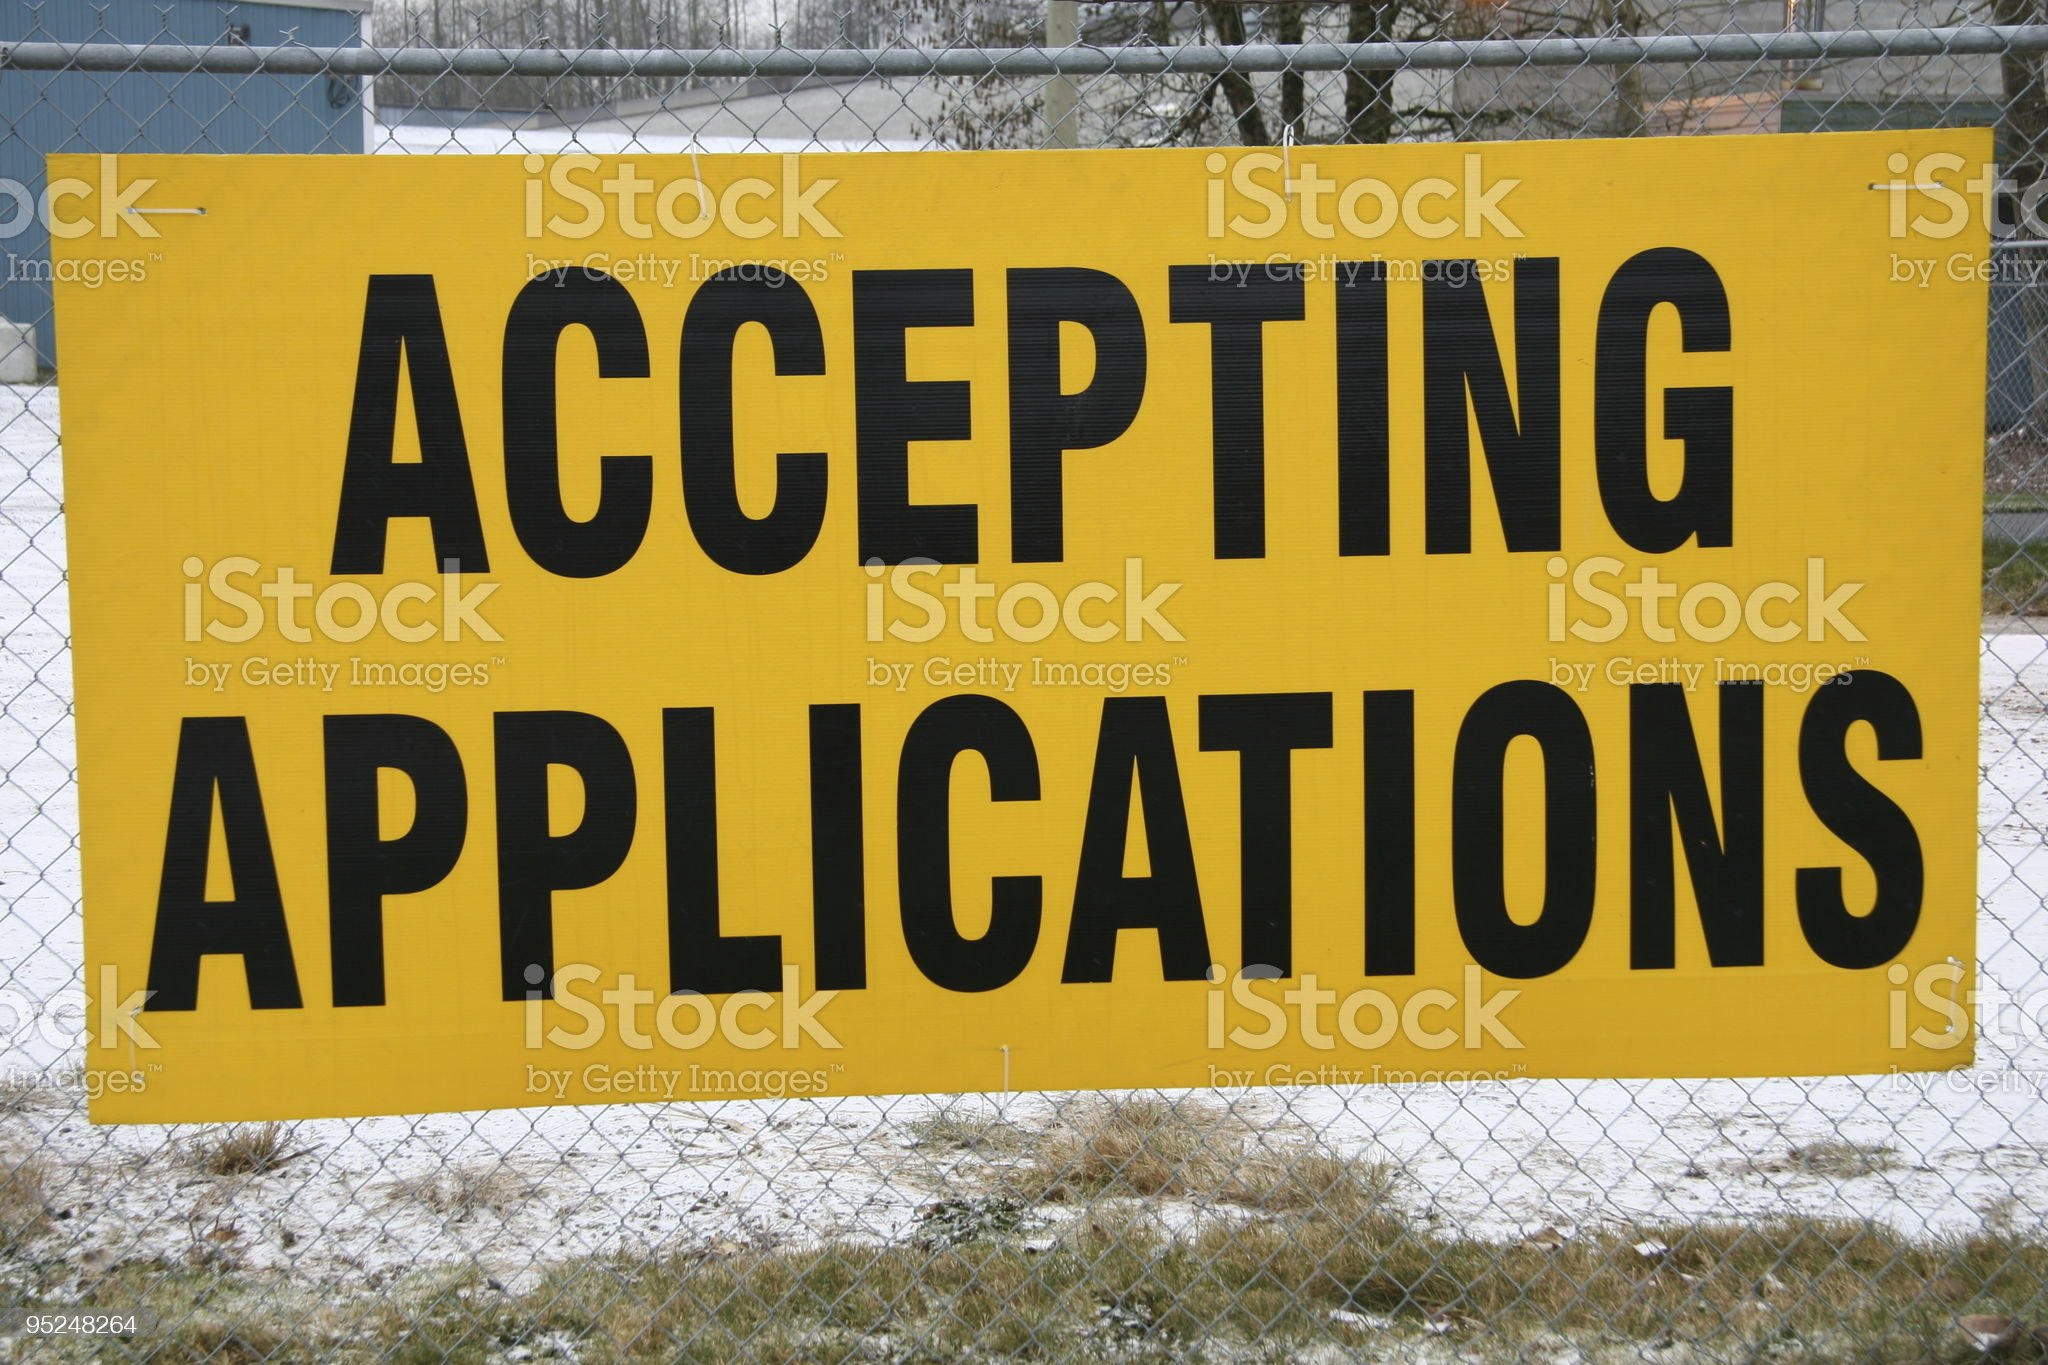 Accepting Applications royalty-free stock photo